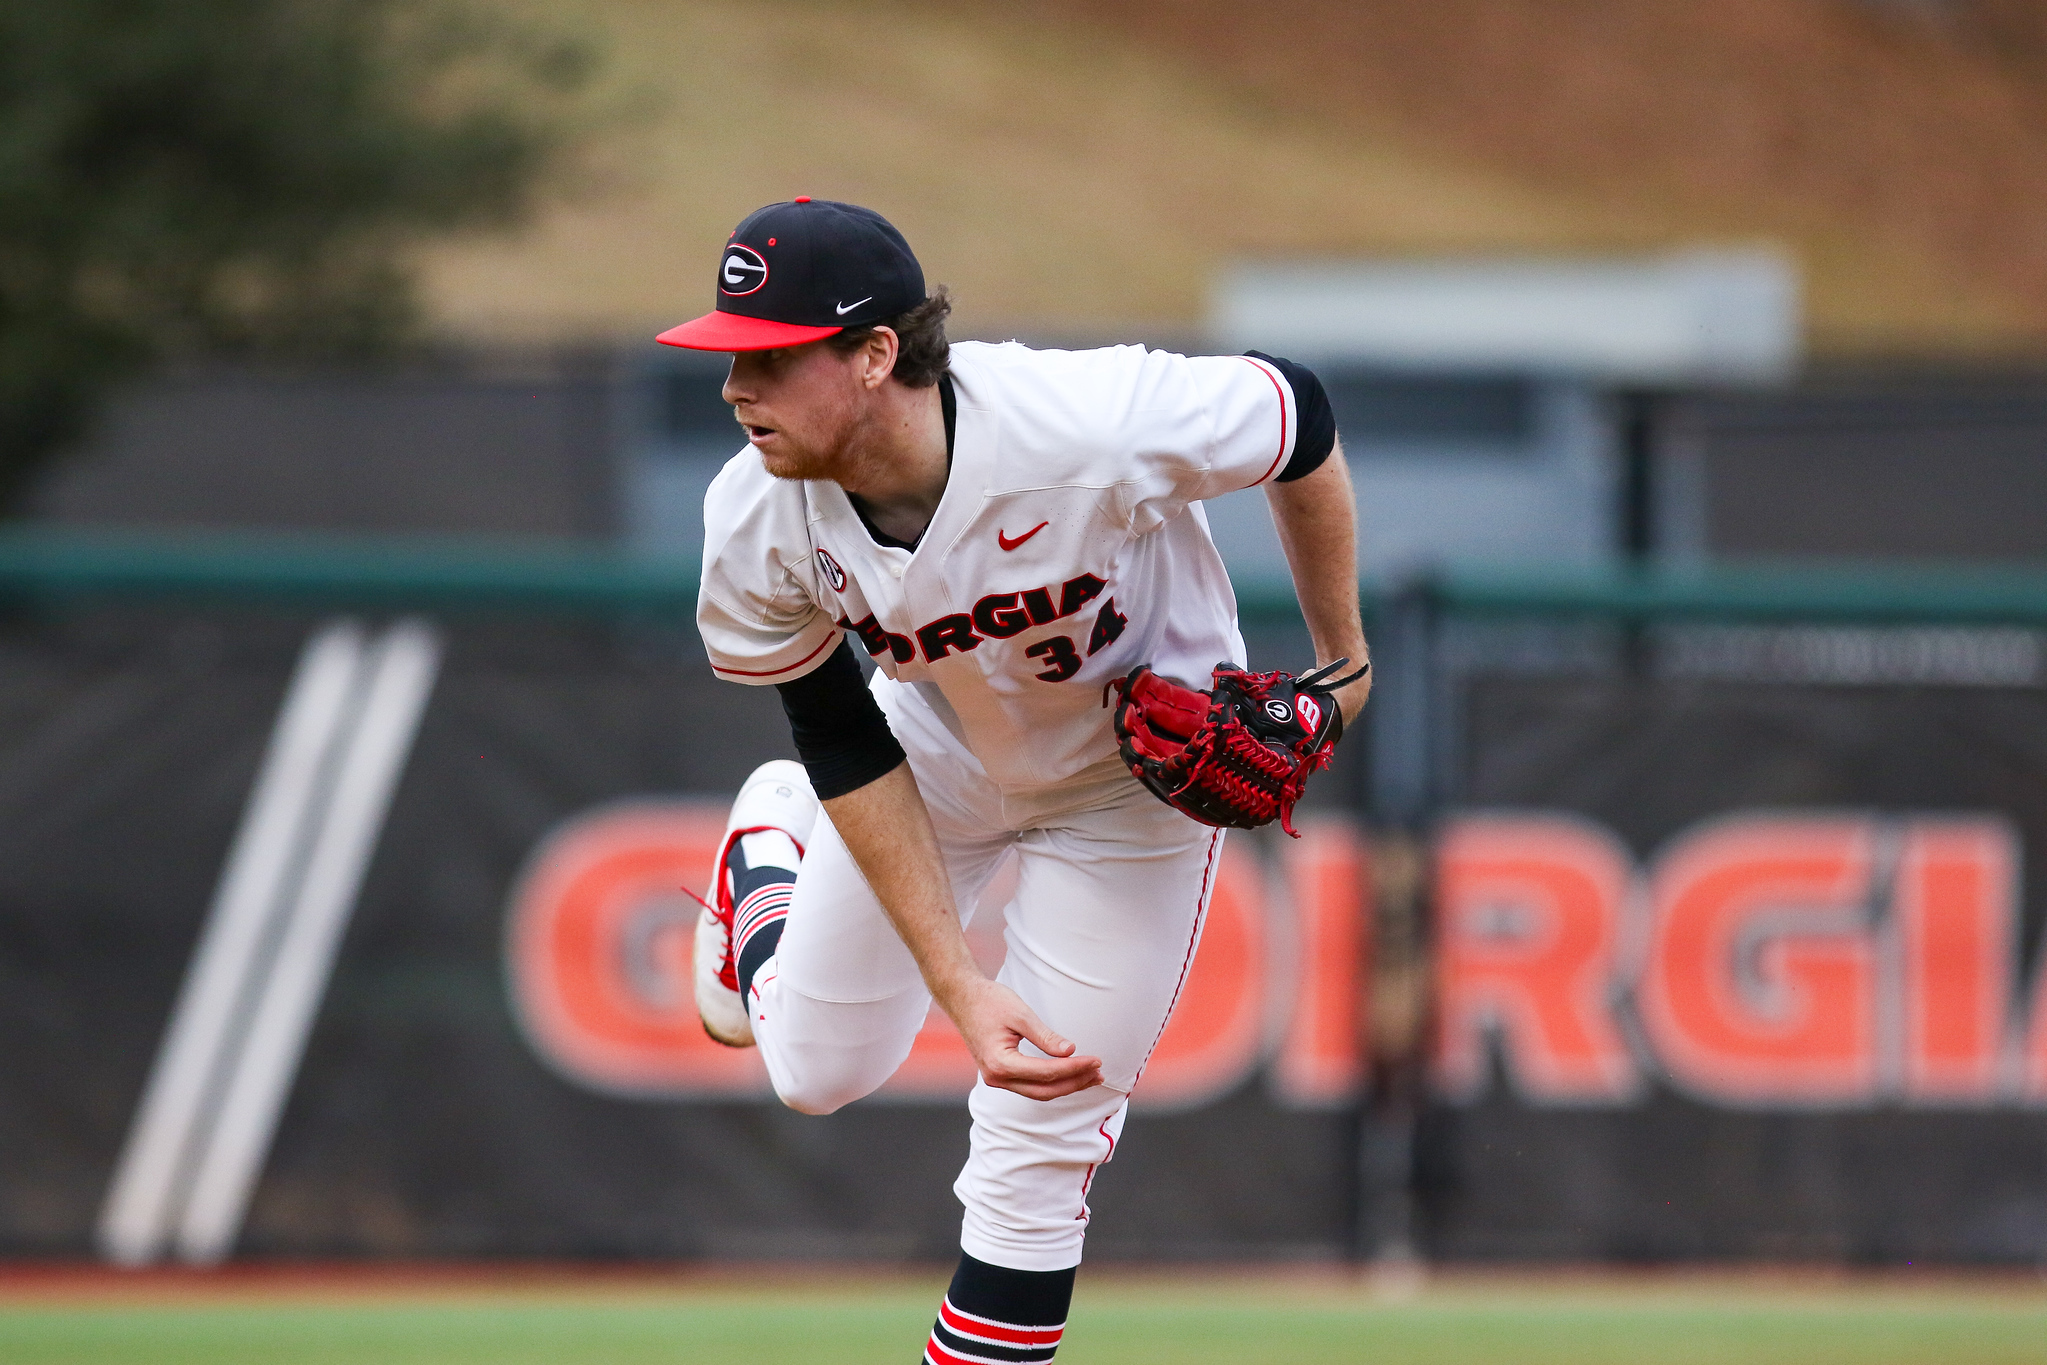 Georgia pitcher Garrett Brown (34) during a game against Kennesaw at Foley Field in Athens, Ga., on Tues., Feb. 25, 2020. (Photo by Chamberlain Smith)